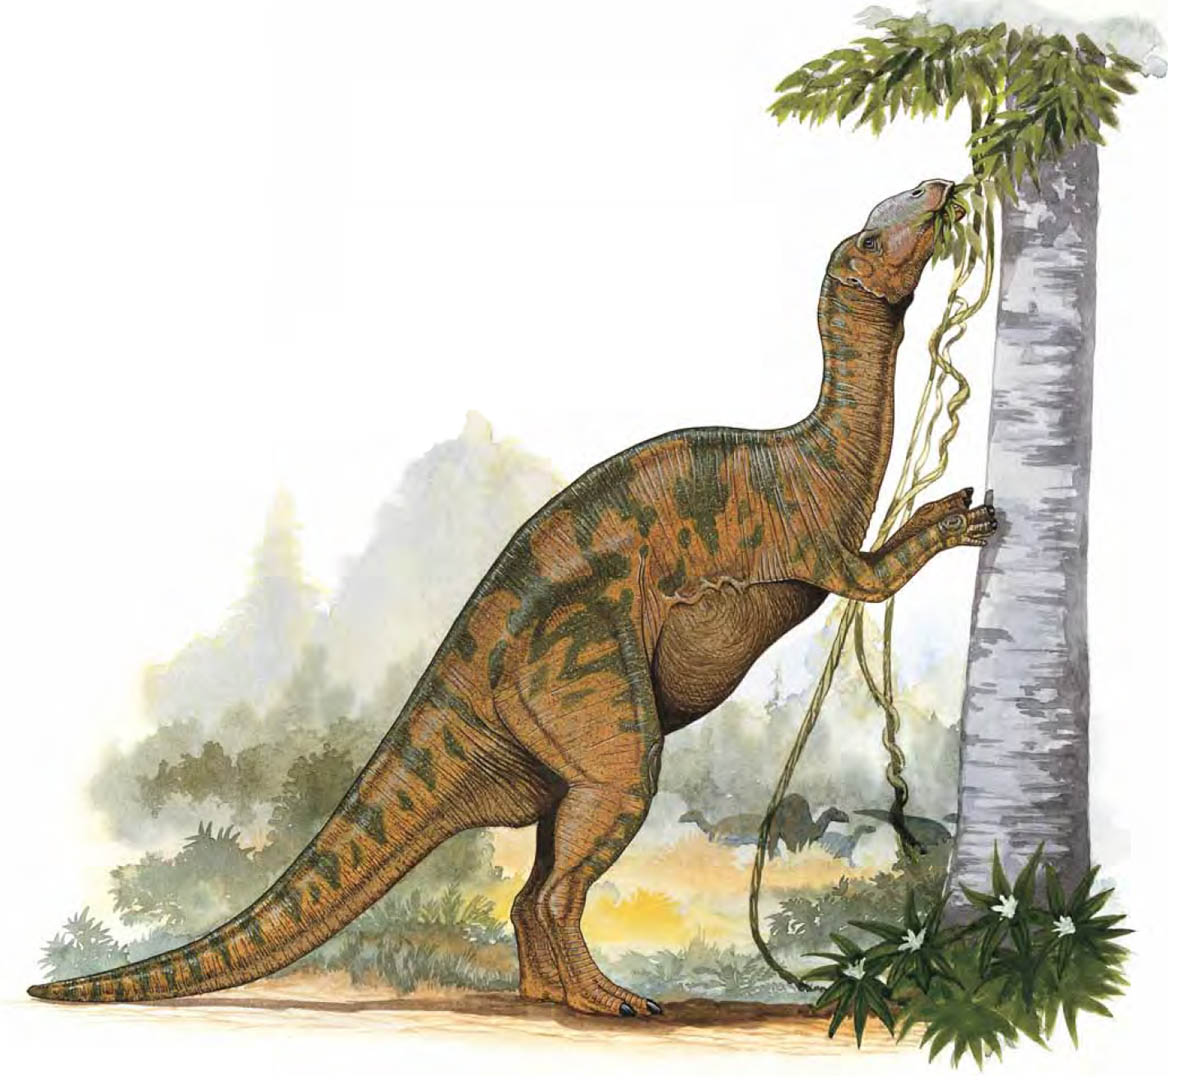 Hadrosaurus Eating Leaves From A High Tree